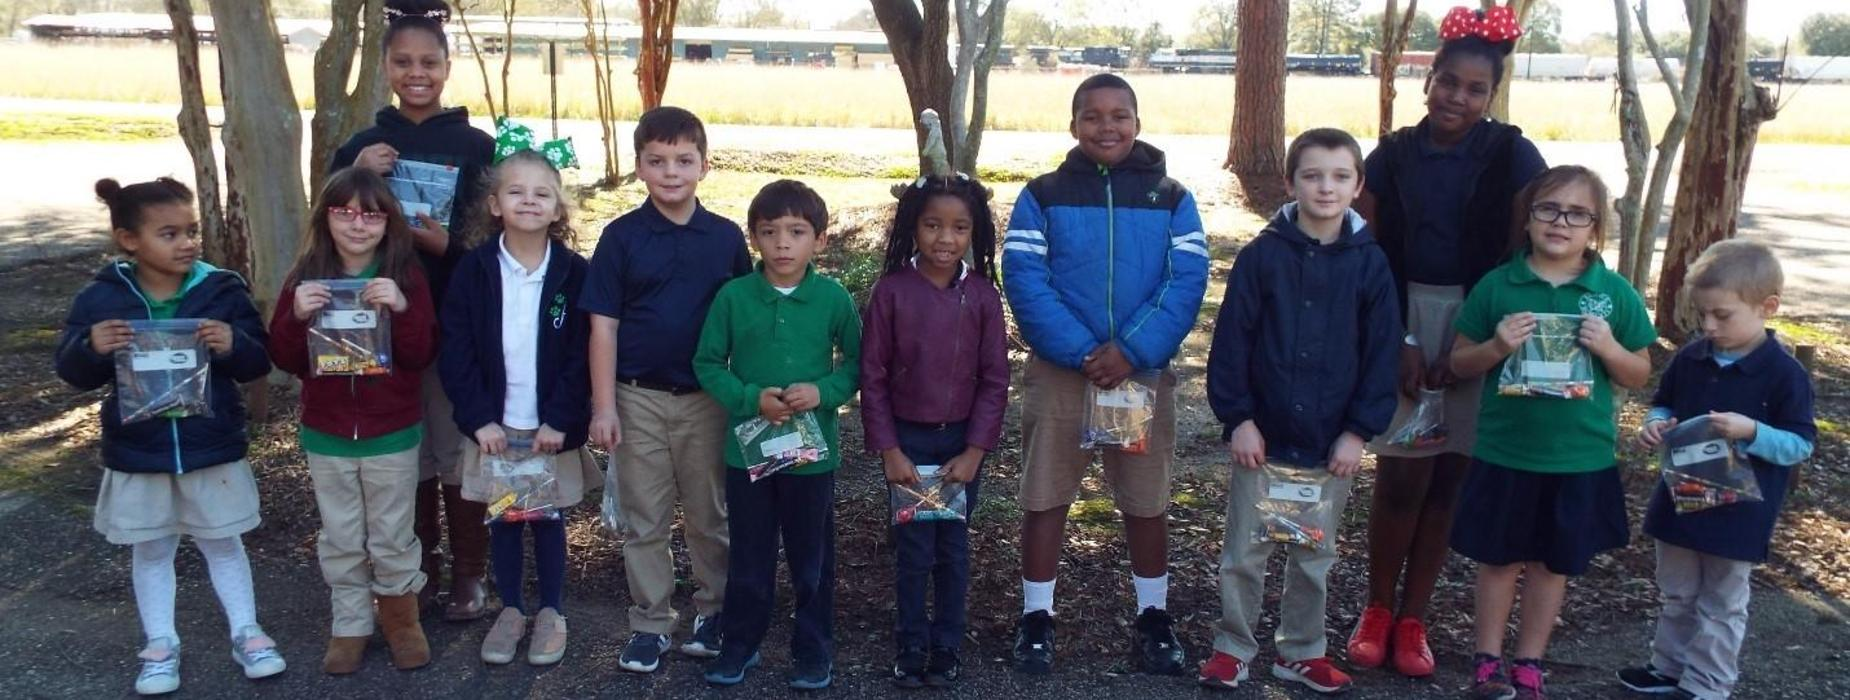 Students of the Week December 17-21, 2018